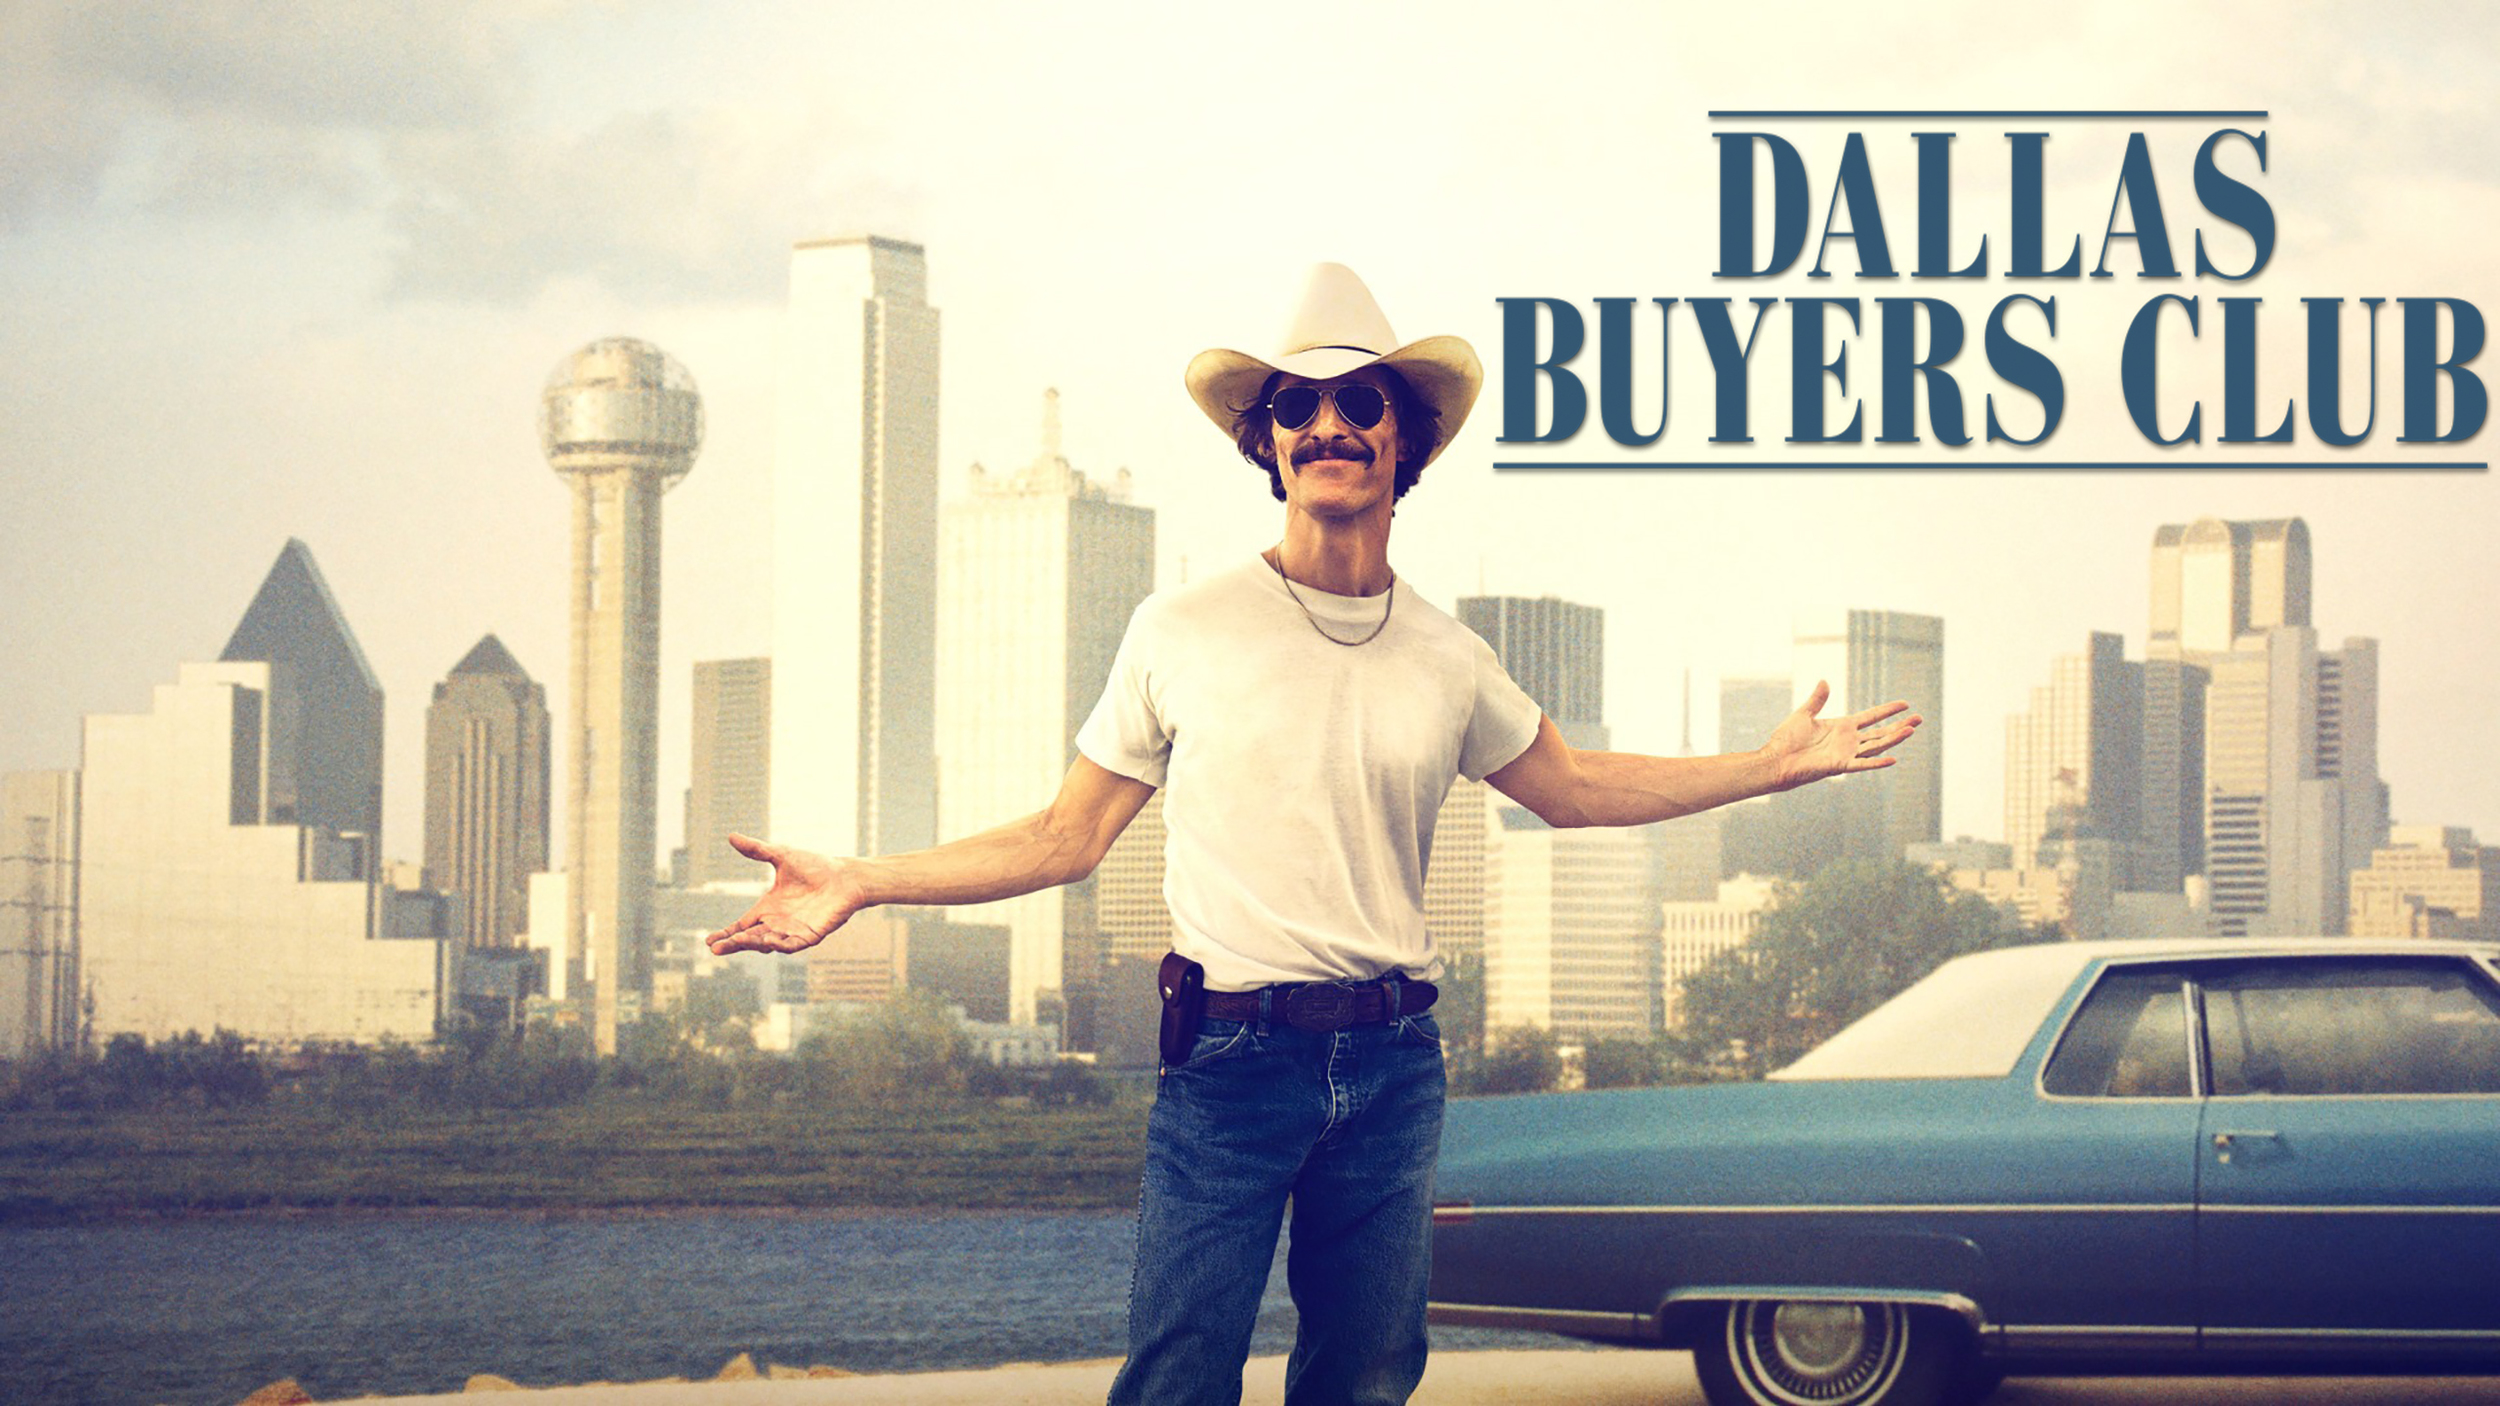 [Netflix-Feature-Film-DallasBuyersClub]_[English_Thailand]_2560x1440.jpg